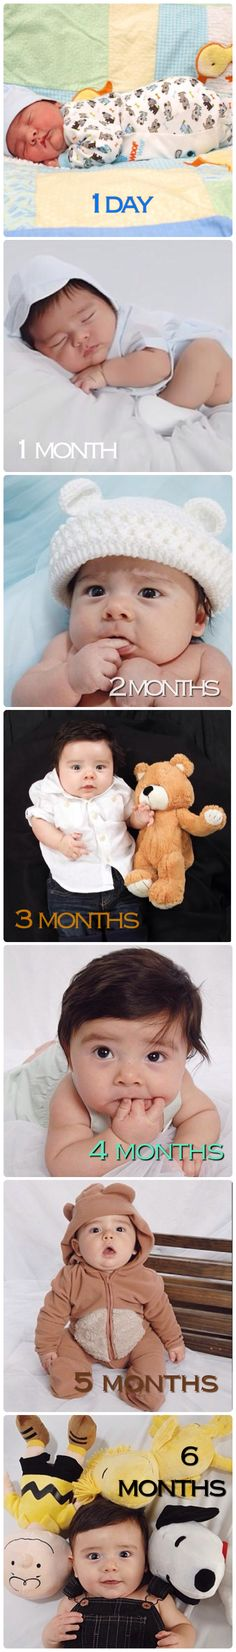 Baby growth 1 day old 1 month old 2 months old 3 months old 4 months old 5 months old 6 months old photo ideas cute baby picture